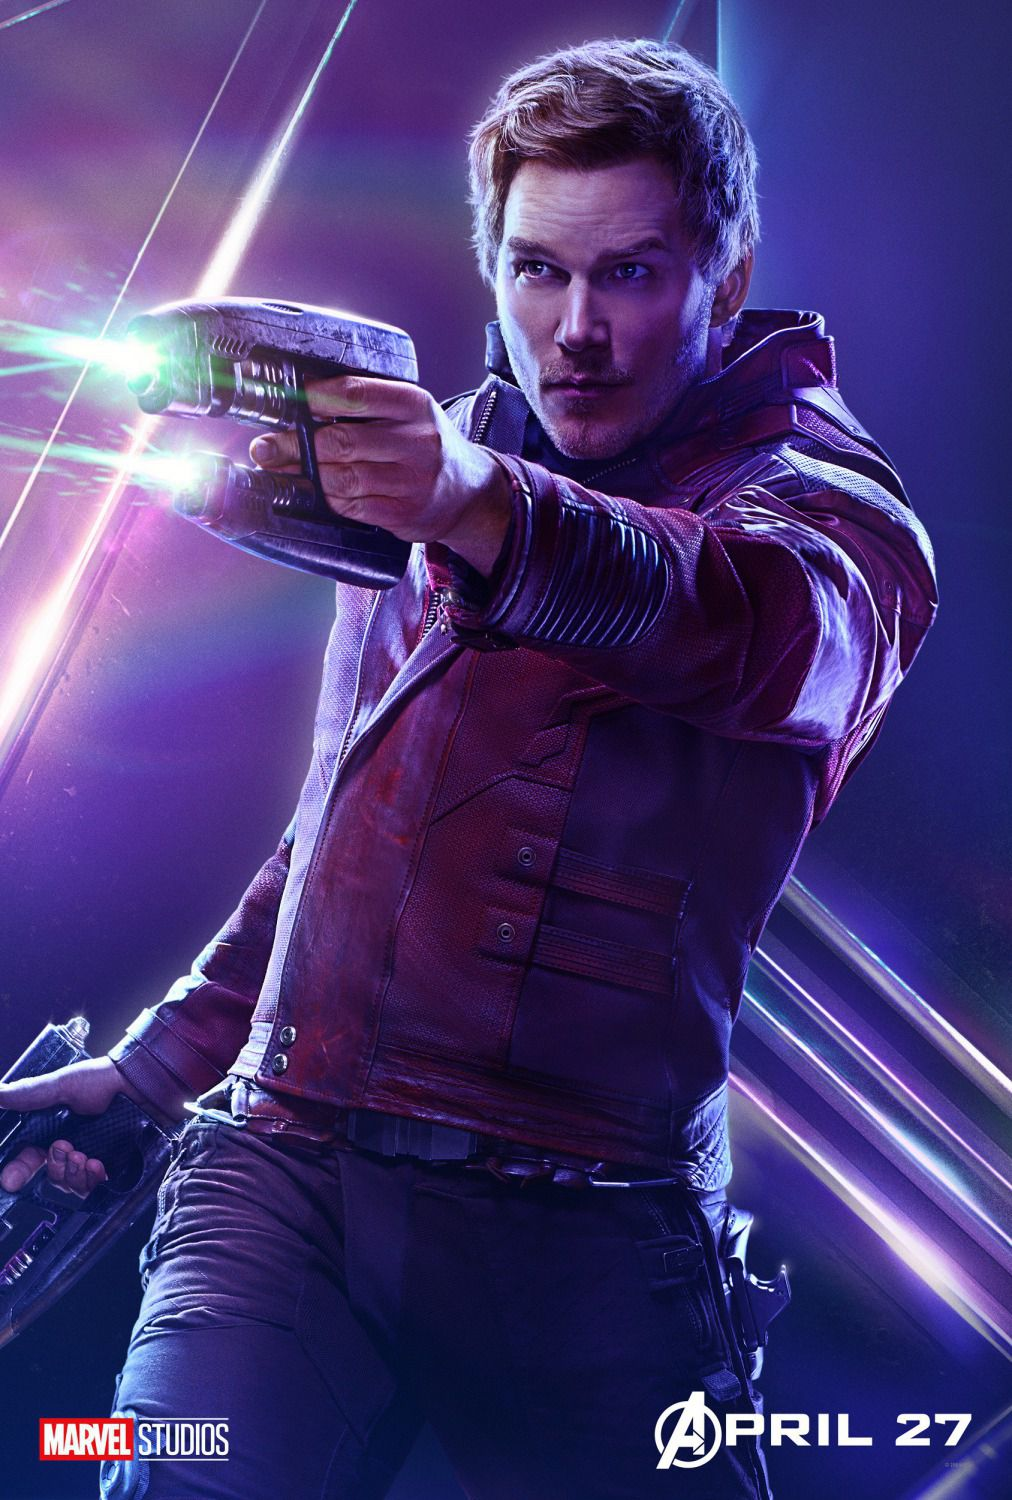 Chris Pratt - Peter Quill - Star-Lord